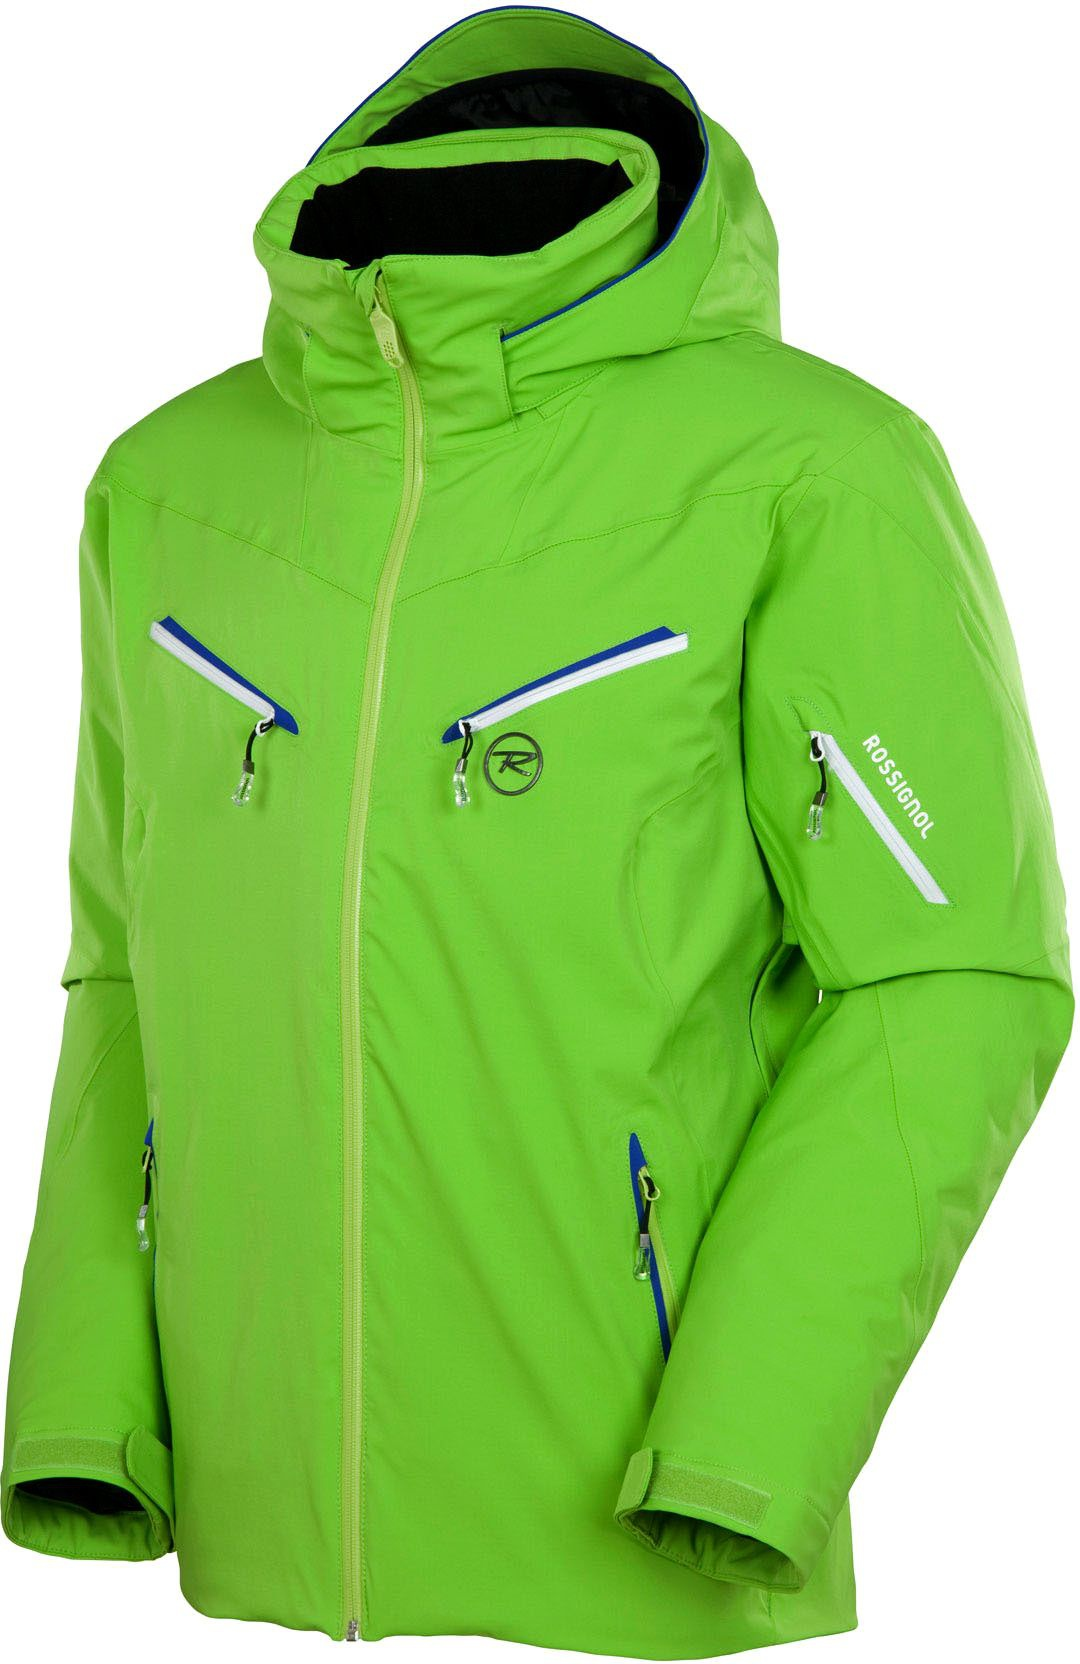 Bunda Rossignol EXPERIENCE STR JACKET Amazon model 2012/13